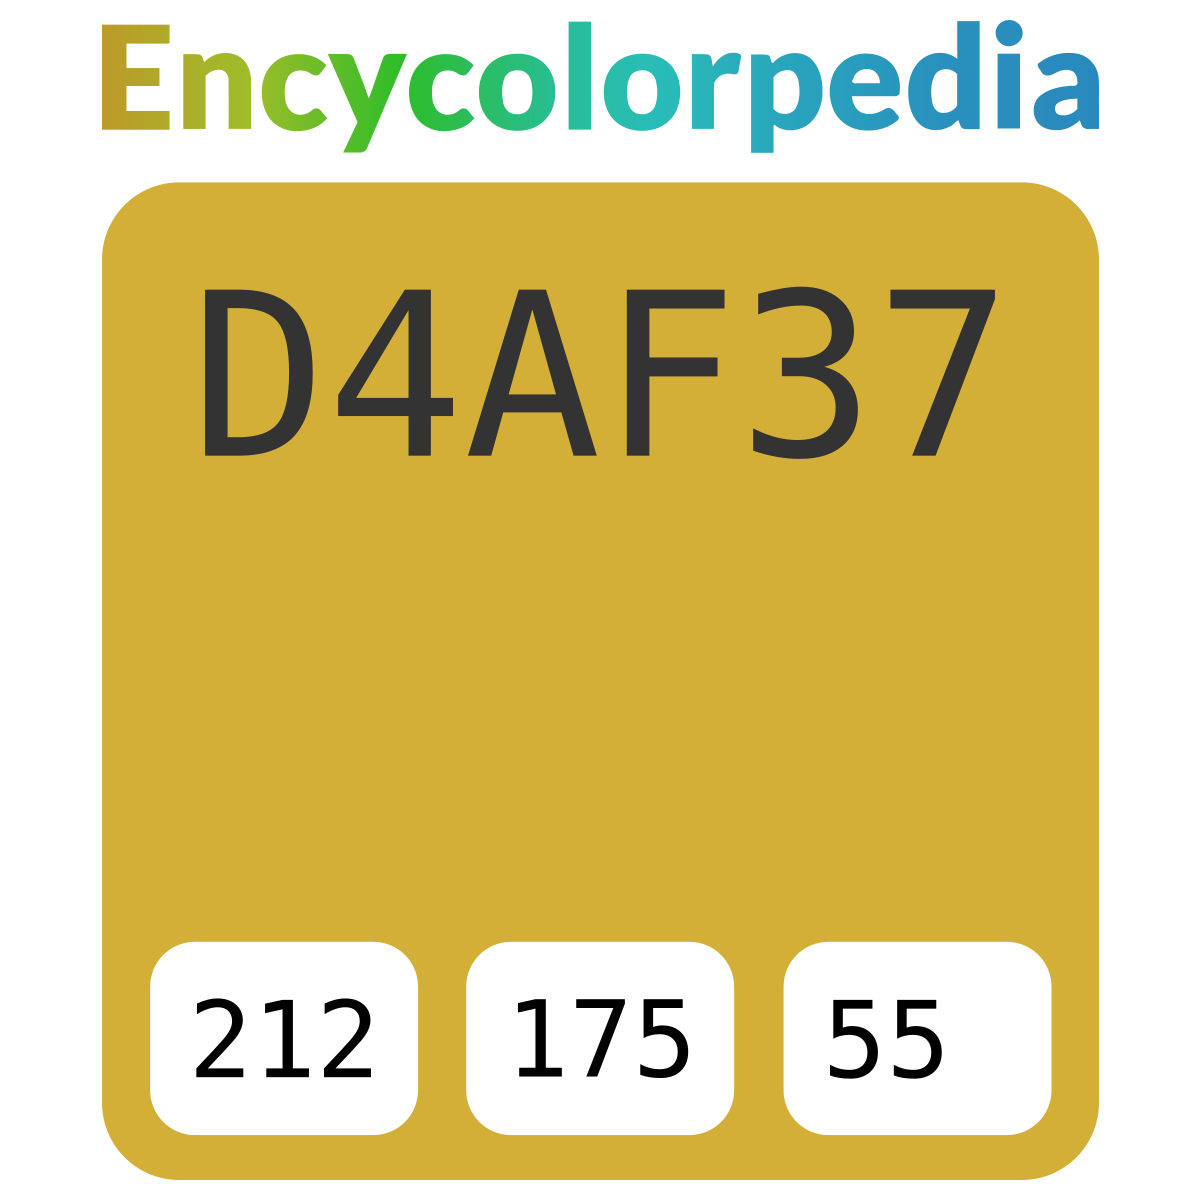 Gold (metallic) / #d4af37 Hex Color Code Schemes & Paints